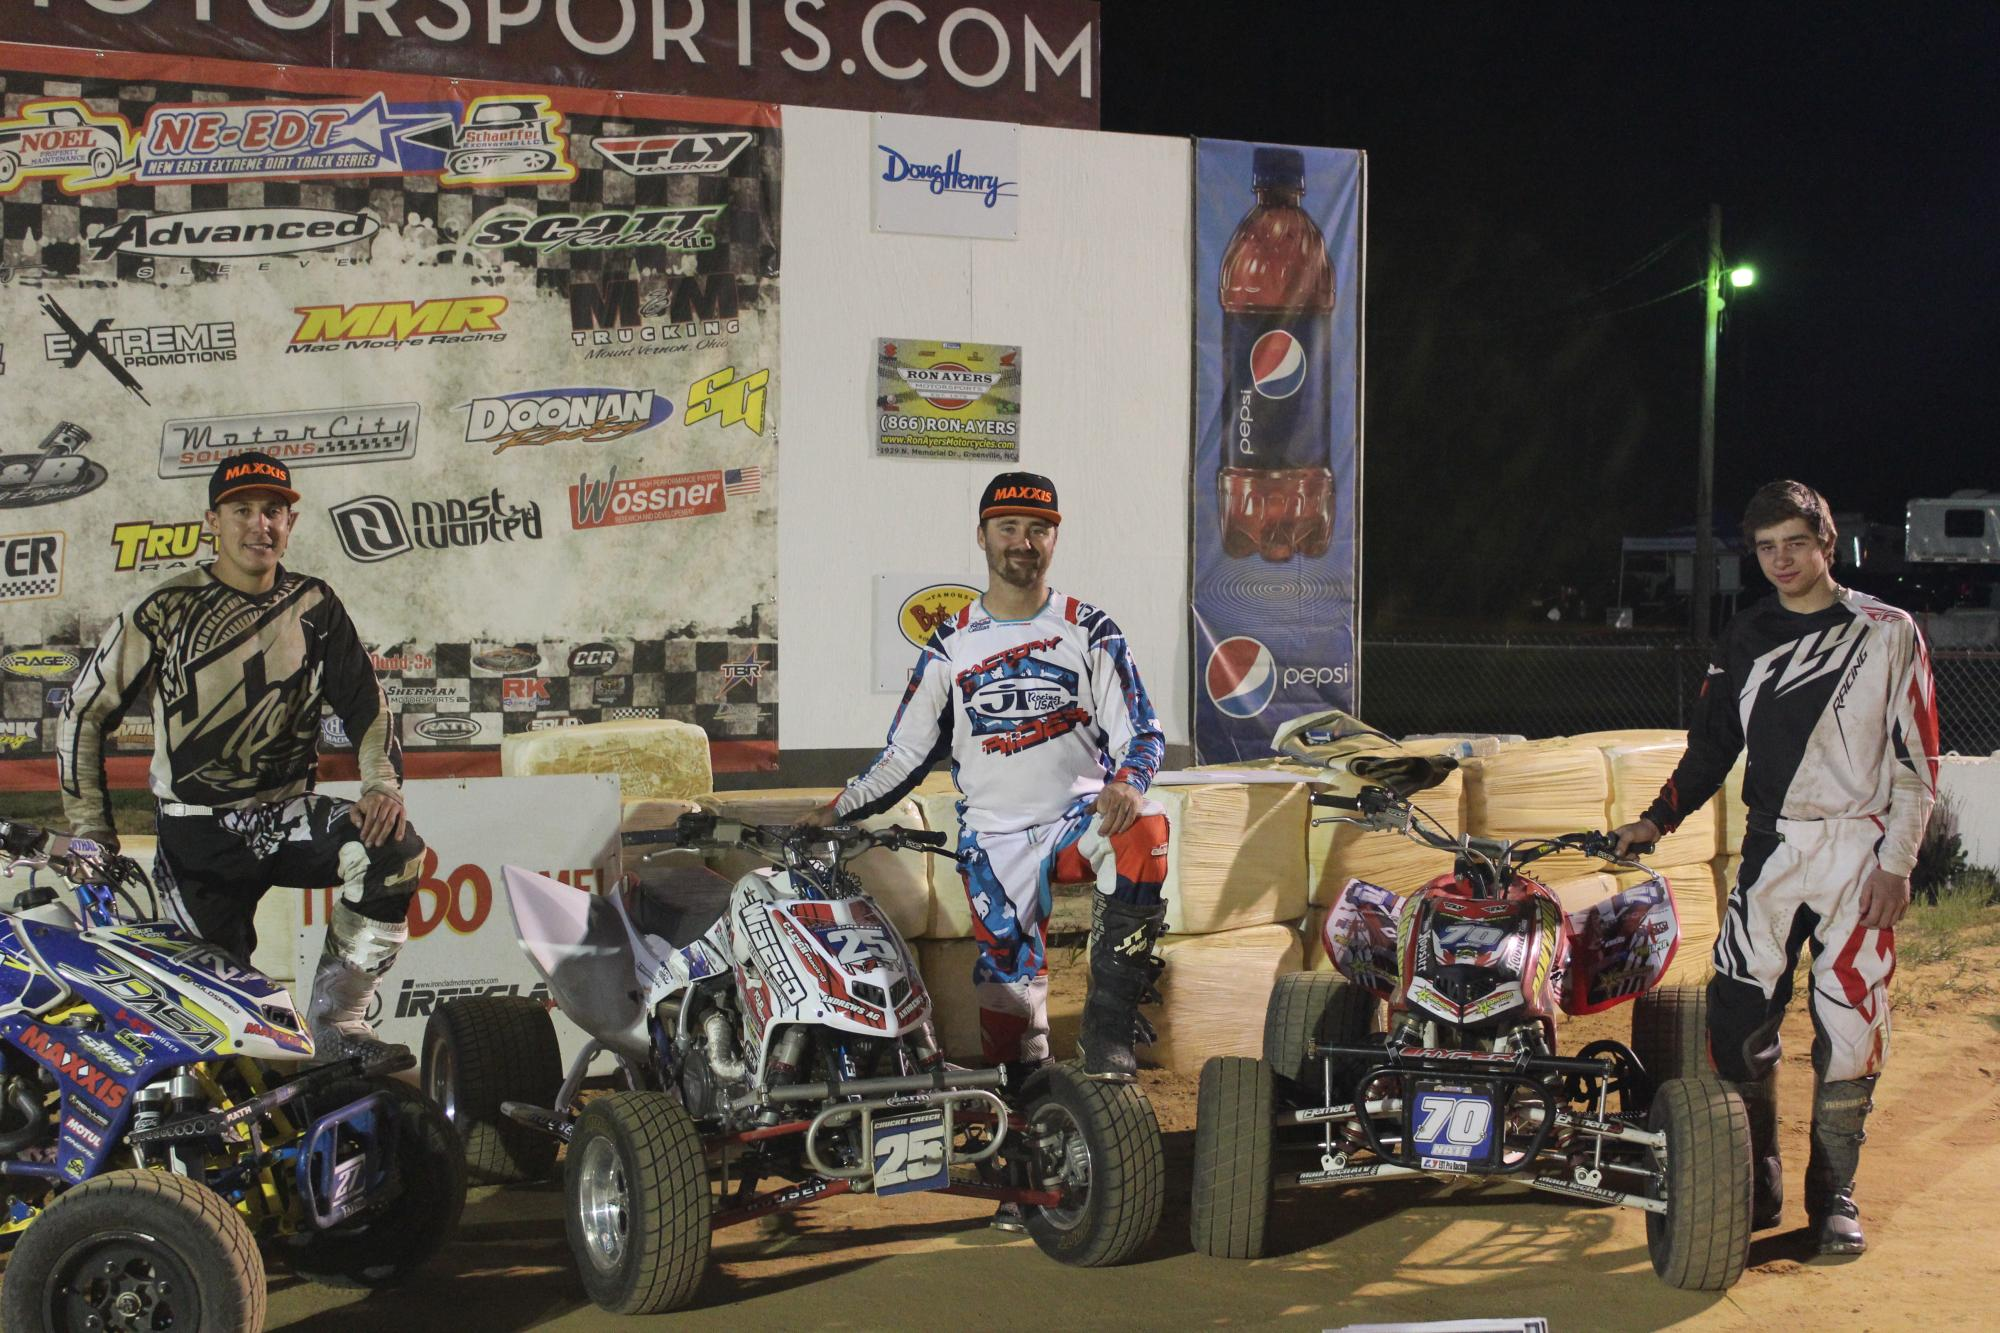 New East Extreme Dirt Track Racing Series